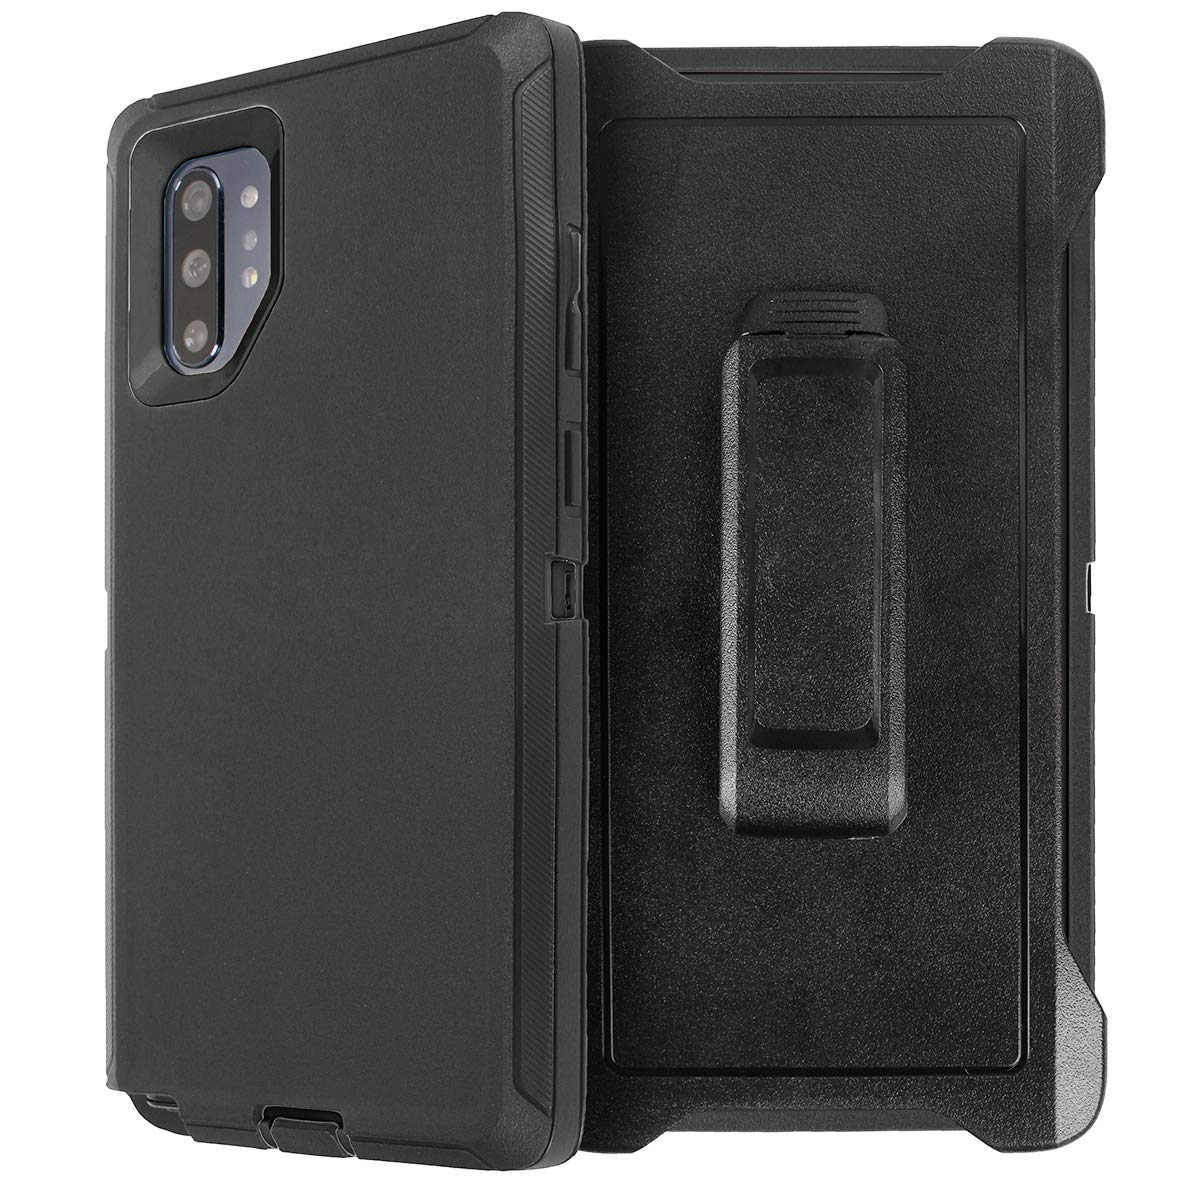 AICase for Galaxy Note 10 Plus Belt-Clip Holster Case, Full Body Rugged Heavy Duty Case with Screen Protector, Shock/Drop/Dust Proof 4-Layer Protection Cover for Samsung Galaxy Note 10 Plus by AICase